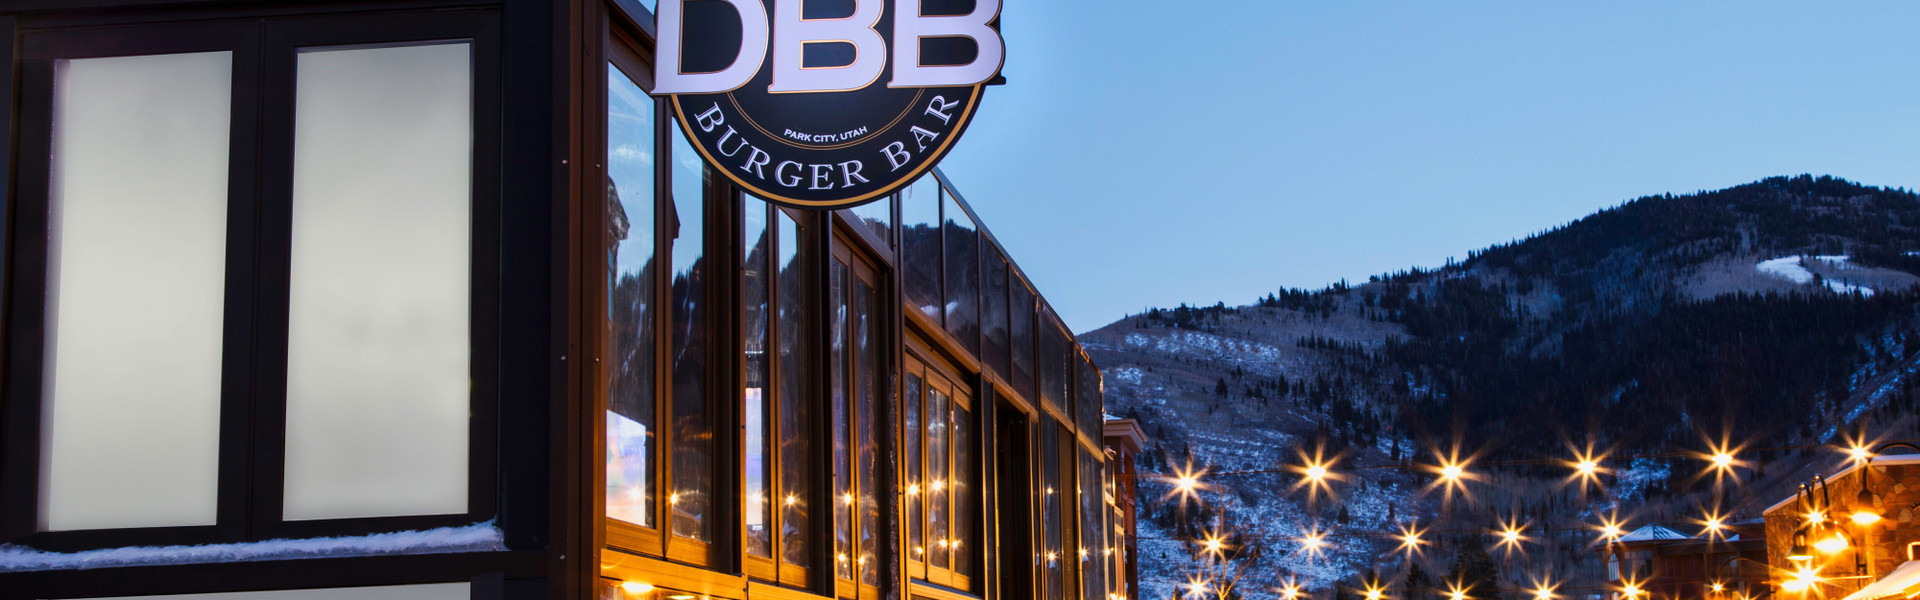 Outside the best burger bar in Park City | Menu For Drafts Burger Bar Park City | Westgate Park City Resort & Spa